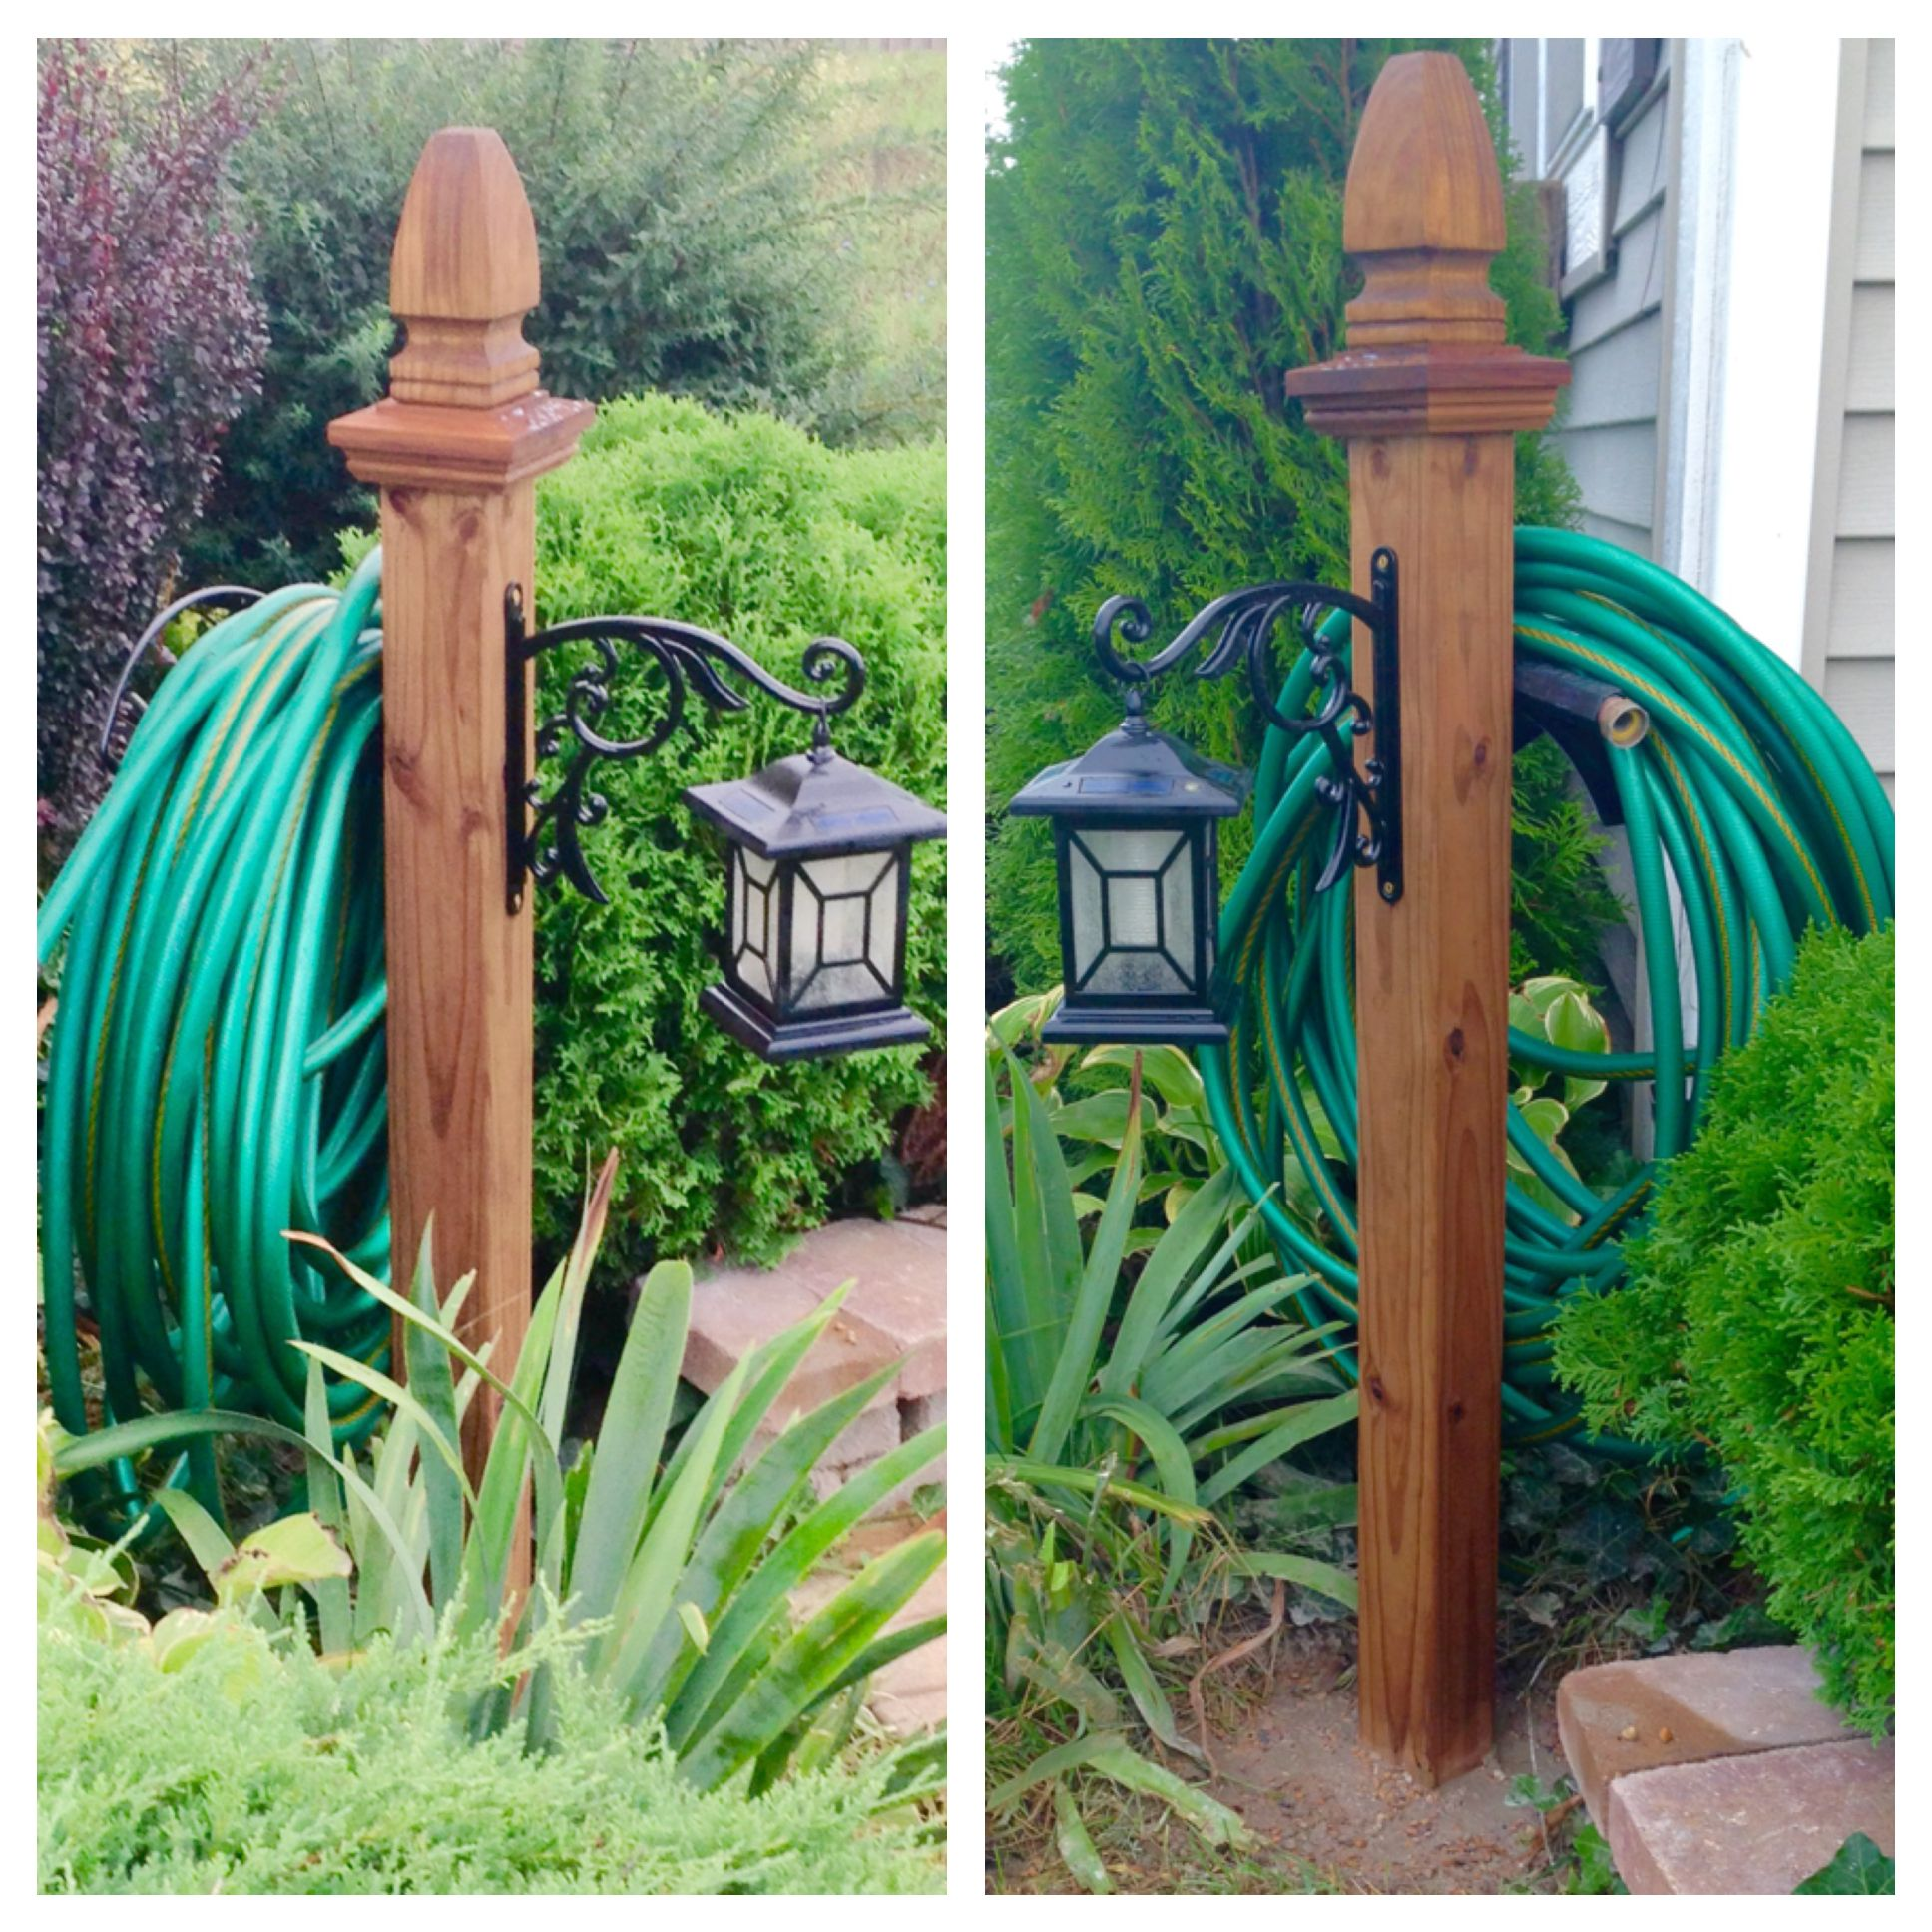 Diy hose and lantern holder 4x4x4 deck post quikrete for Diy garden hose storage